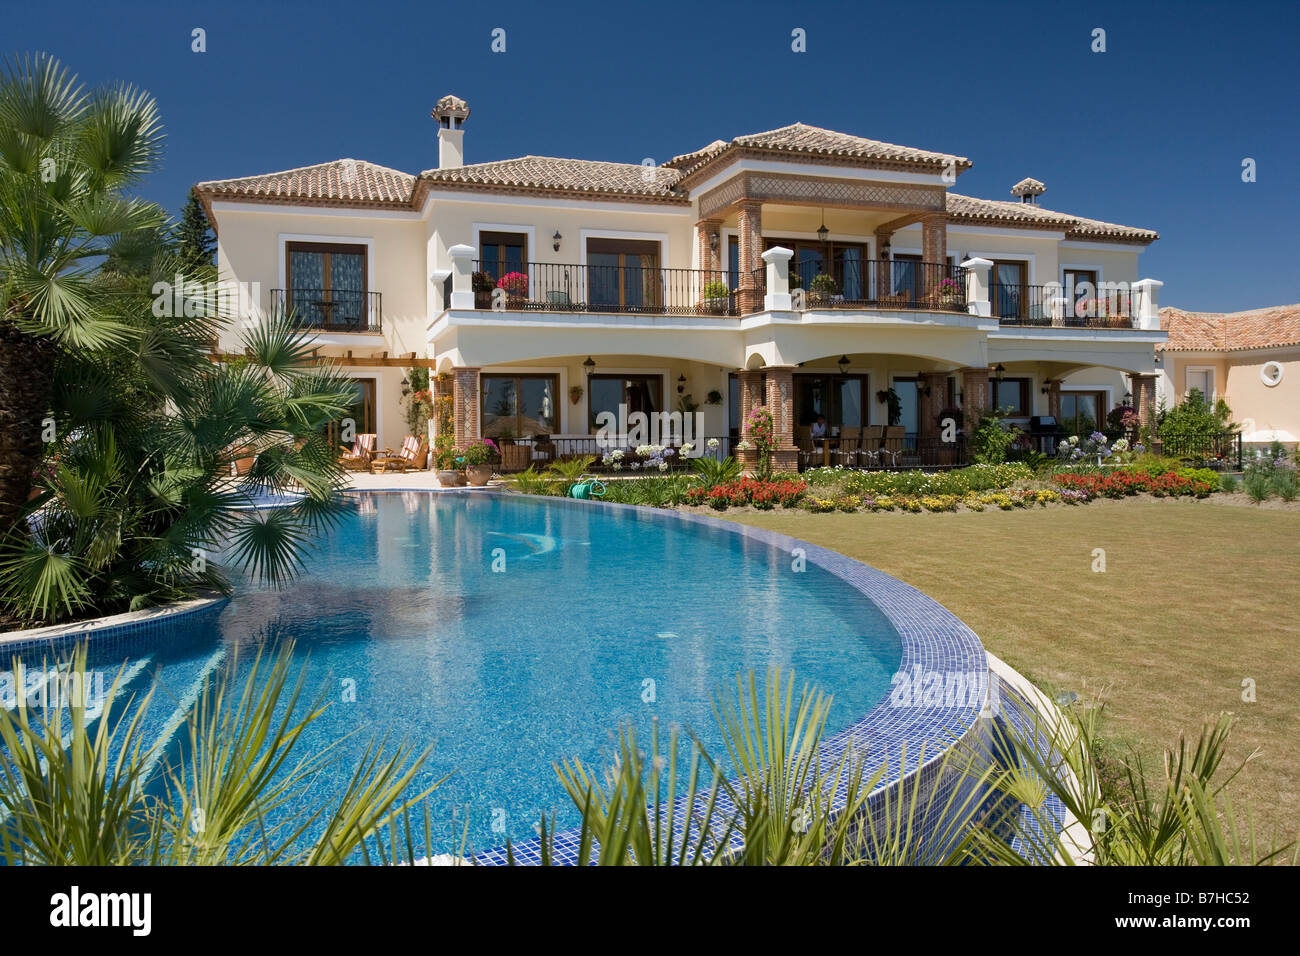 Raised Swimming Pool In Garden Of Large New Detached Holiday Villa On  Urbanization In Southern Spain